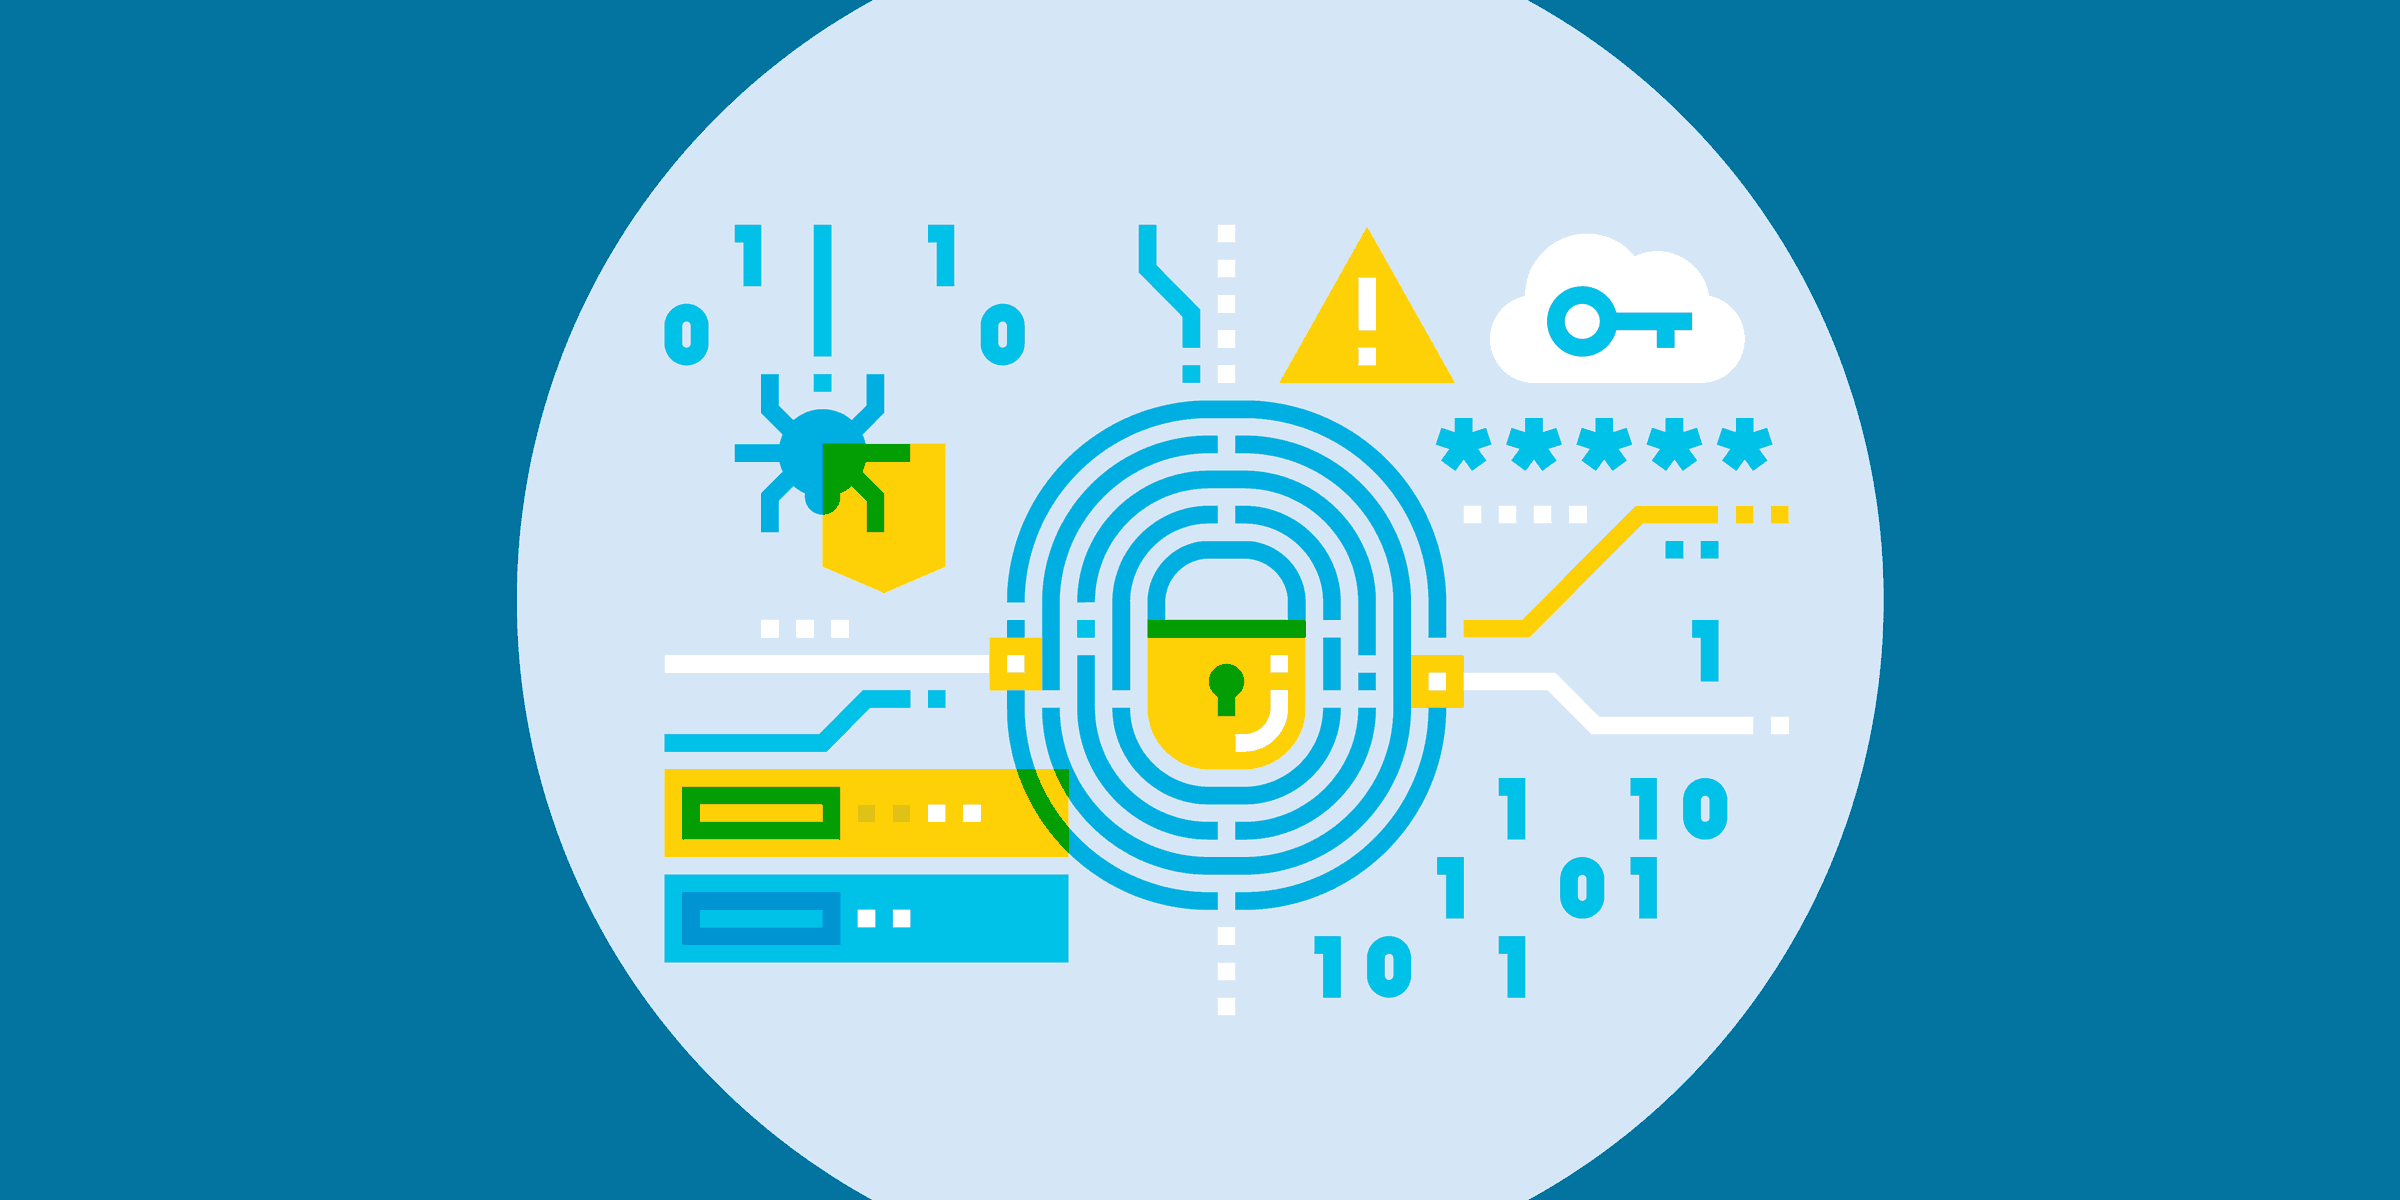 illustration of nonprofit it security icons, such as a lock, key, exclamation mark, hard drives, virus, and zeros and ones